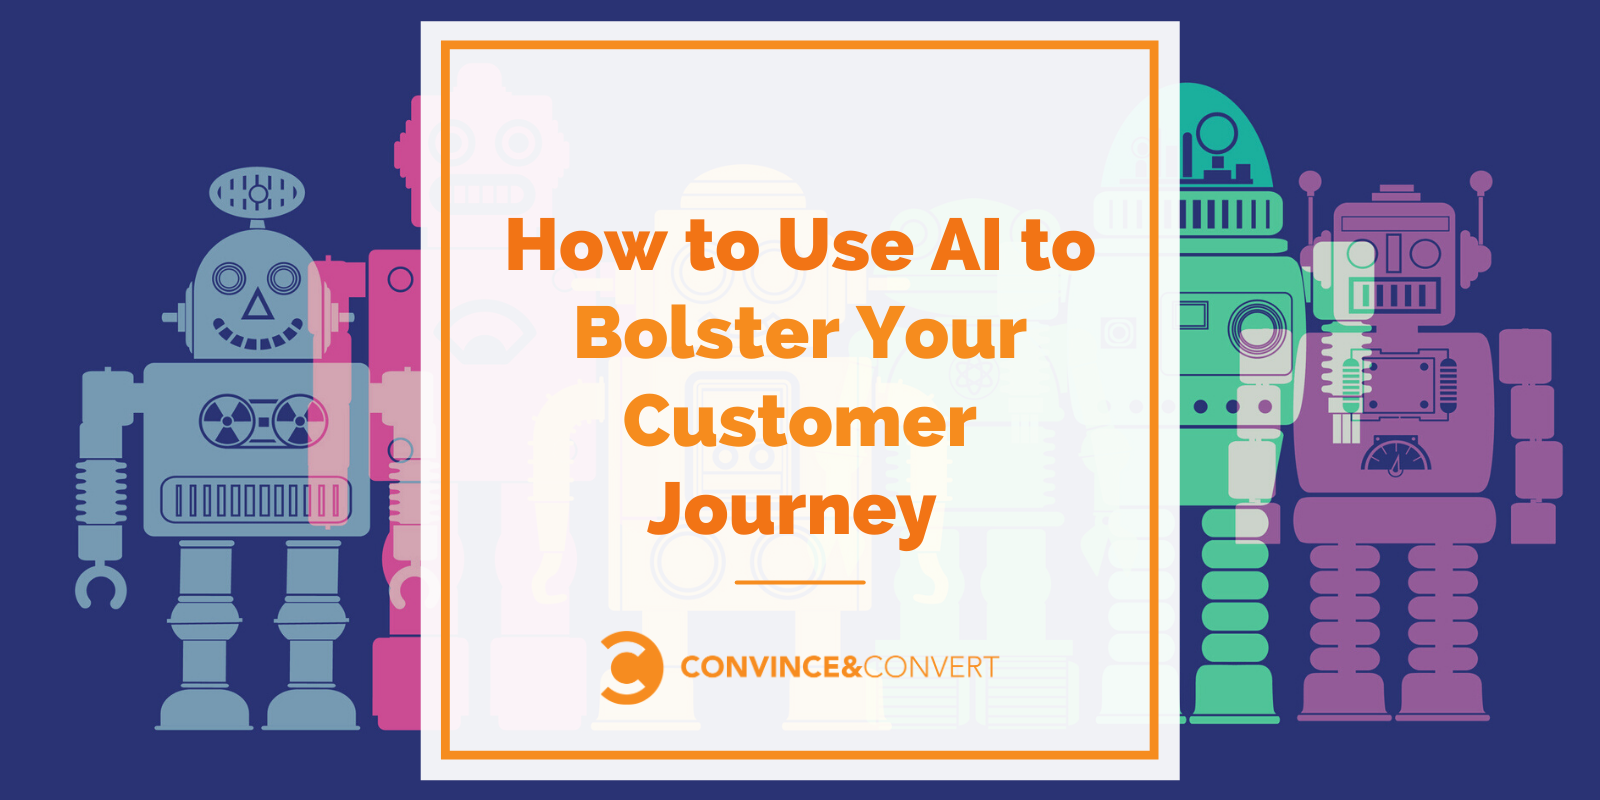 How to Use AI to Bolster Your Customer Journey